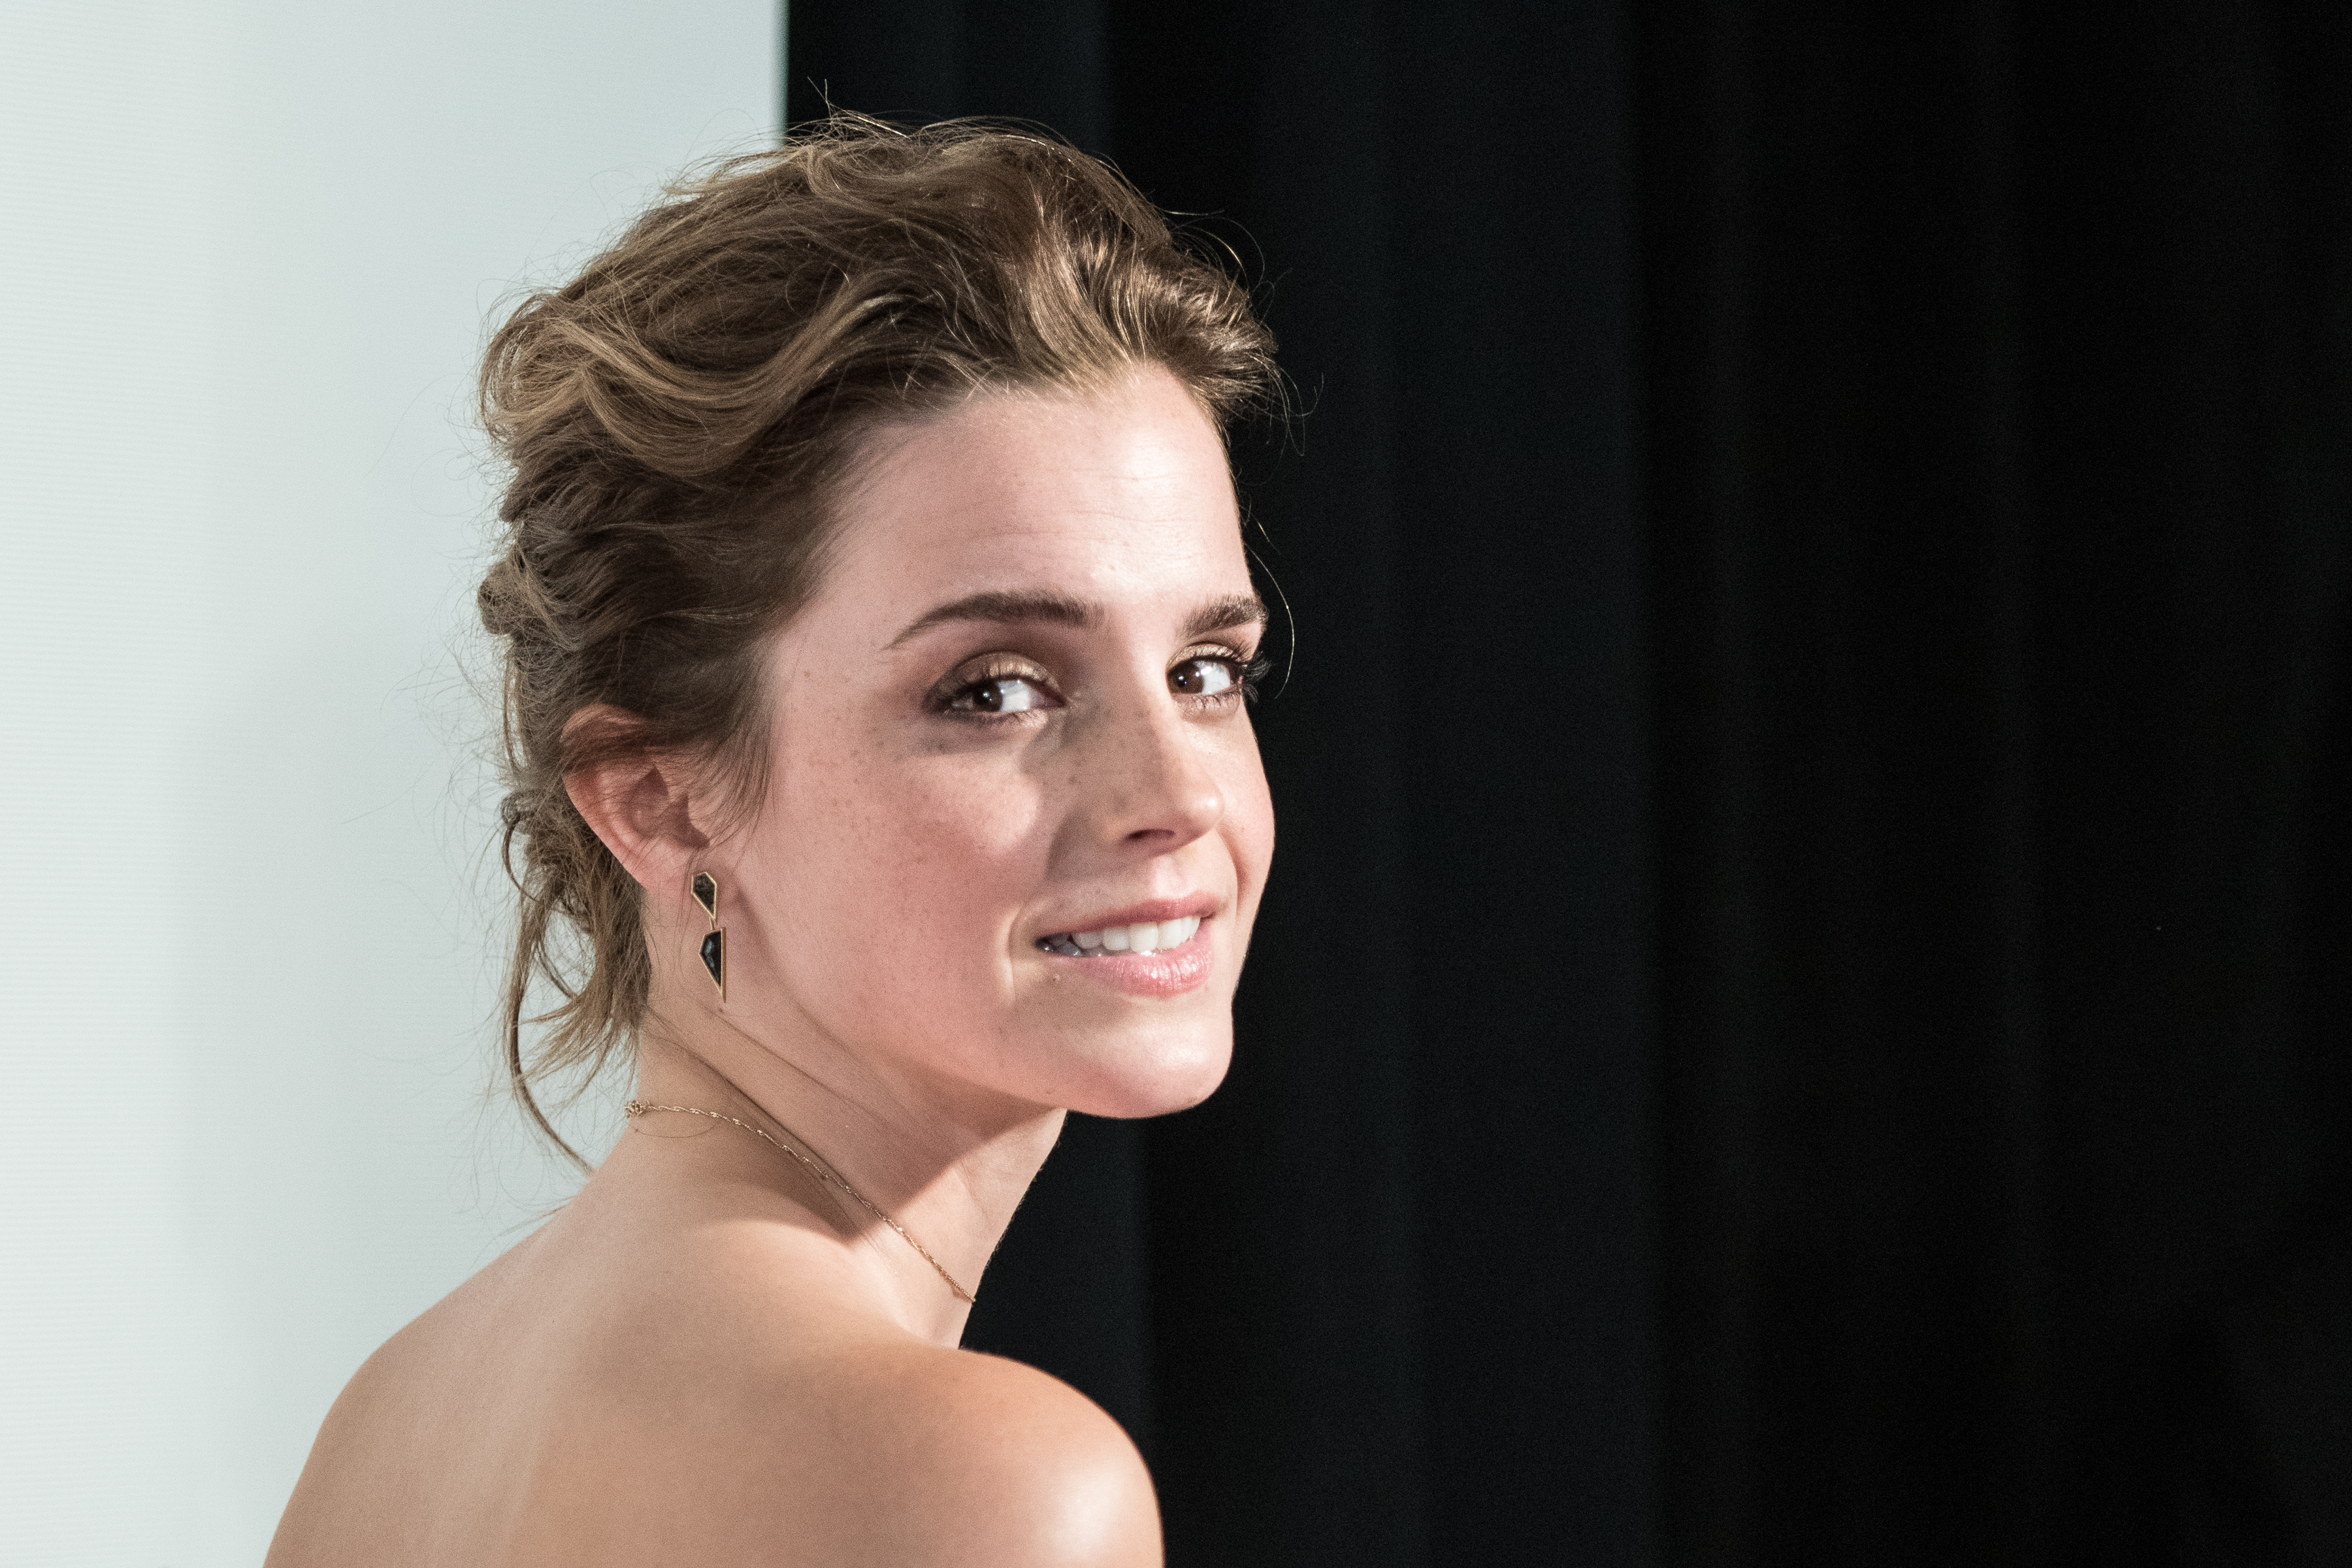 NEW YORK, NY - APRIL 26:  Emma Watson attends at BMCC Tribeca PAC on April 26, 2017 in New York City.  (Photo by Steven Ferdman/Patrick McMullan via Getty Images)